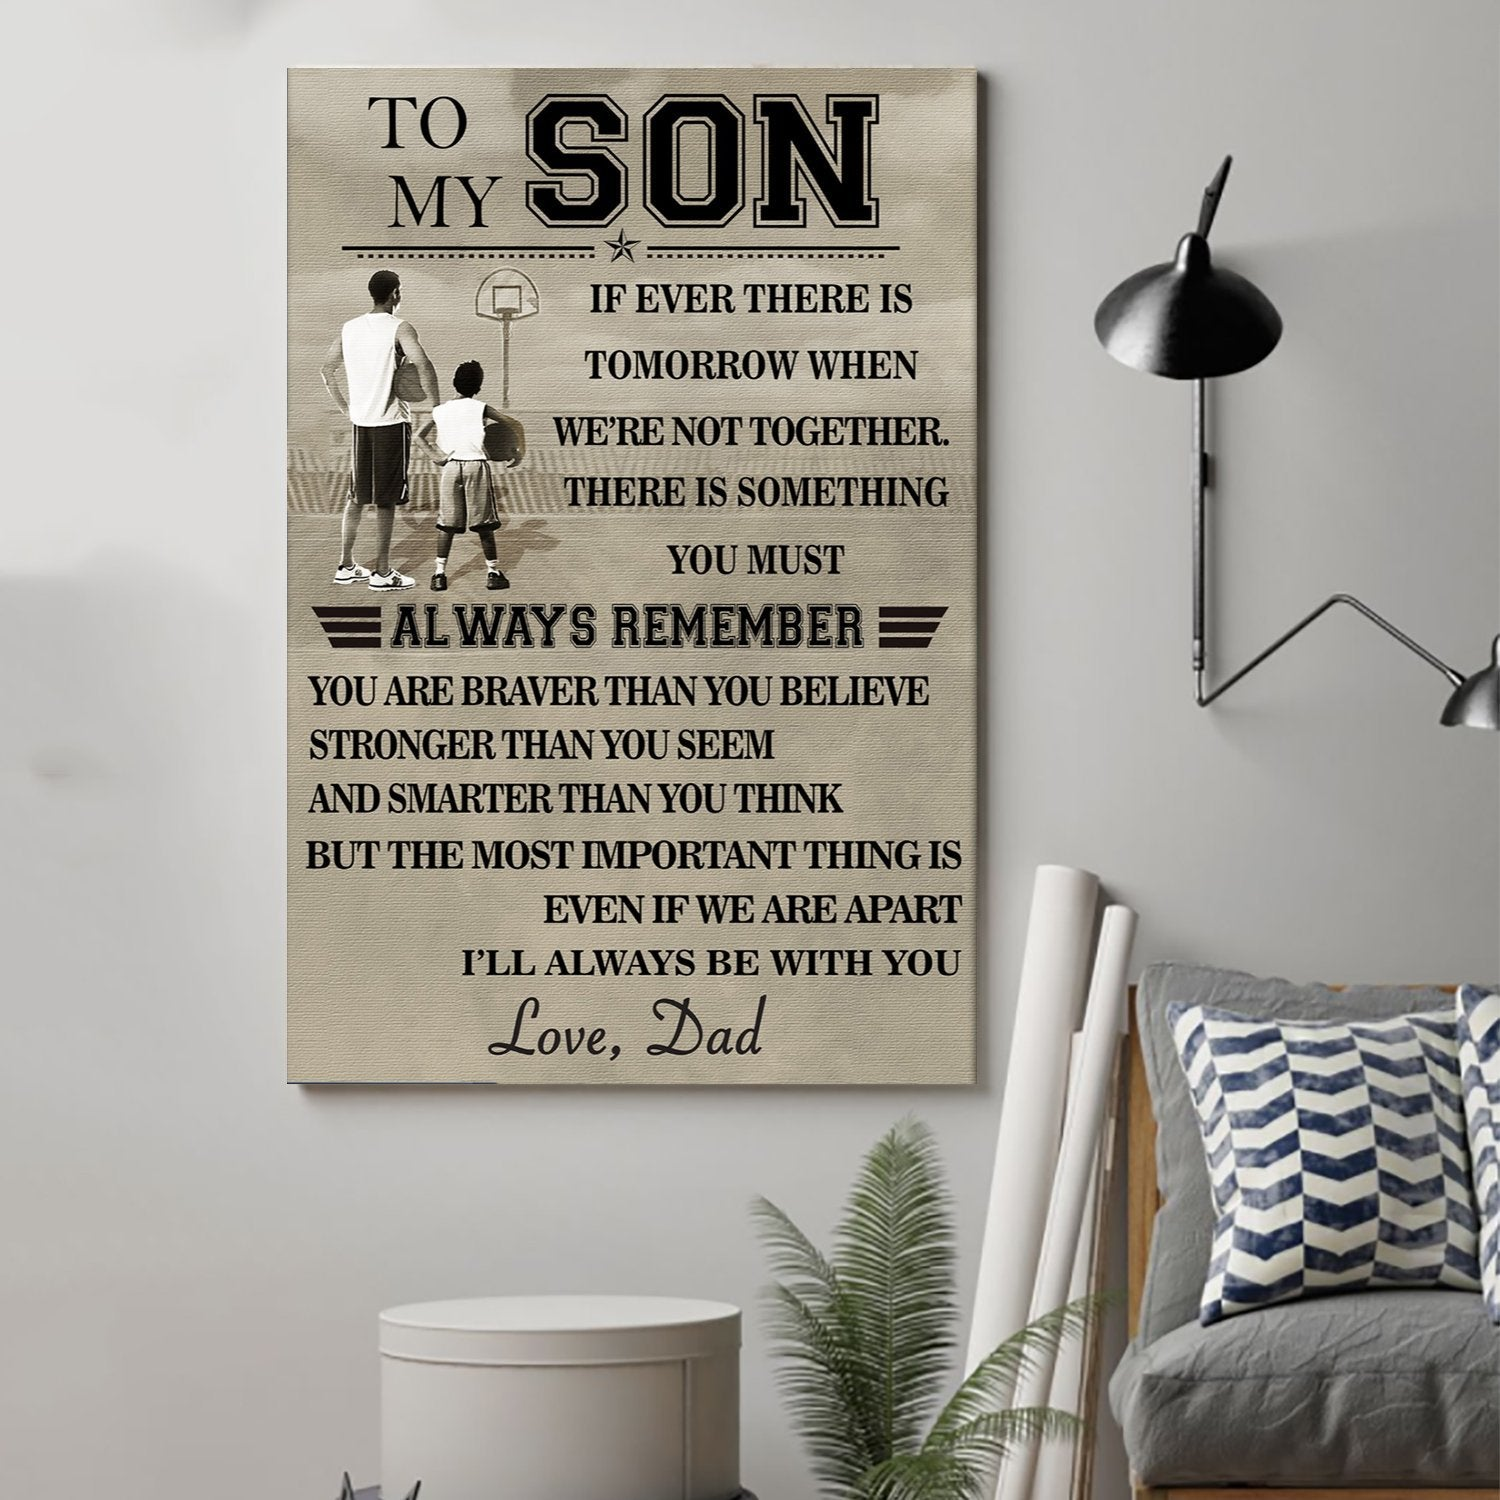 (cv395) Basketball Poster - To my son Always remember